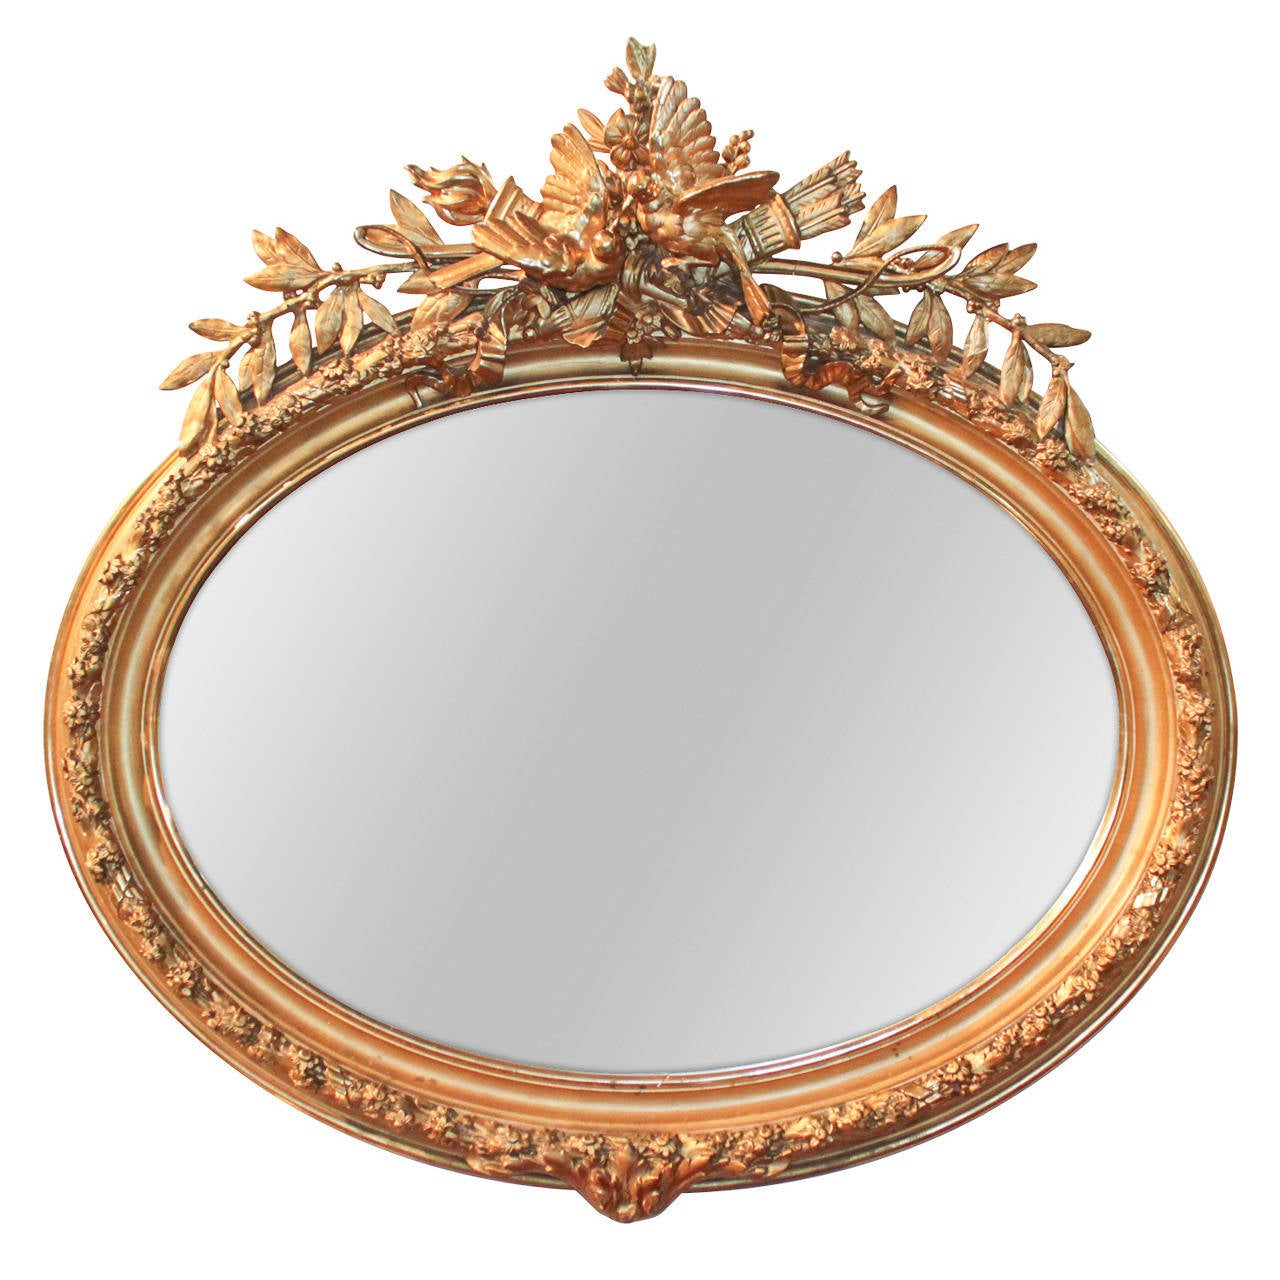 Arched gilt mirror at 1stdibs - 19th Century French Louis Xvi Oval Gilt Mirror 1